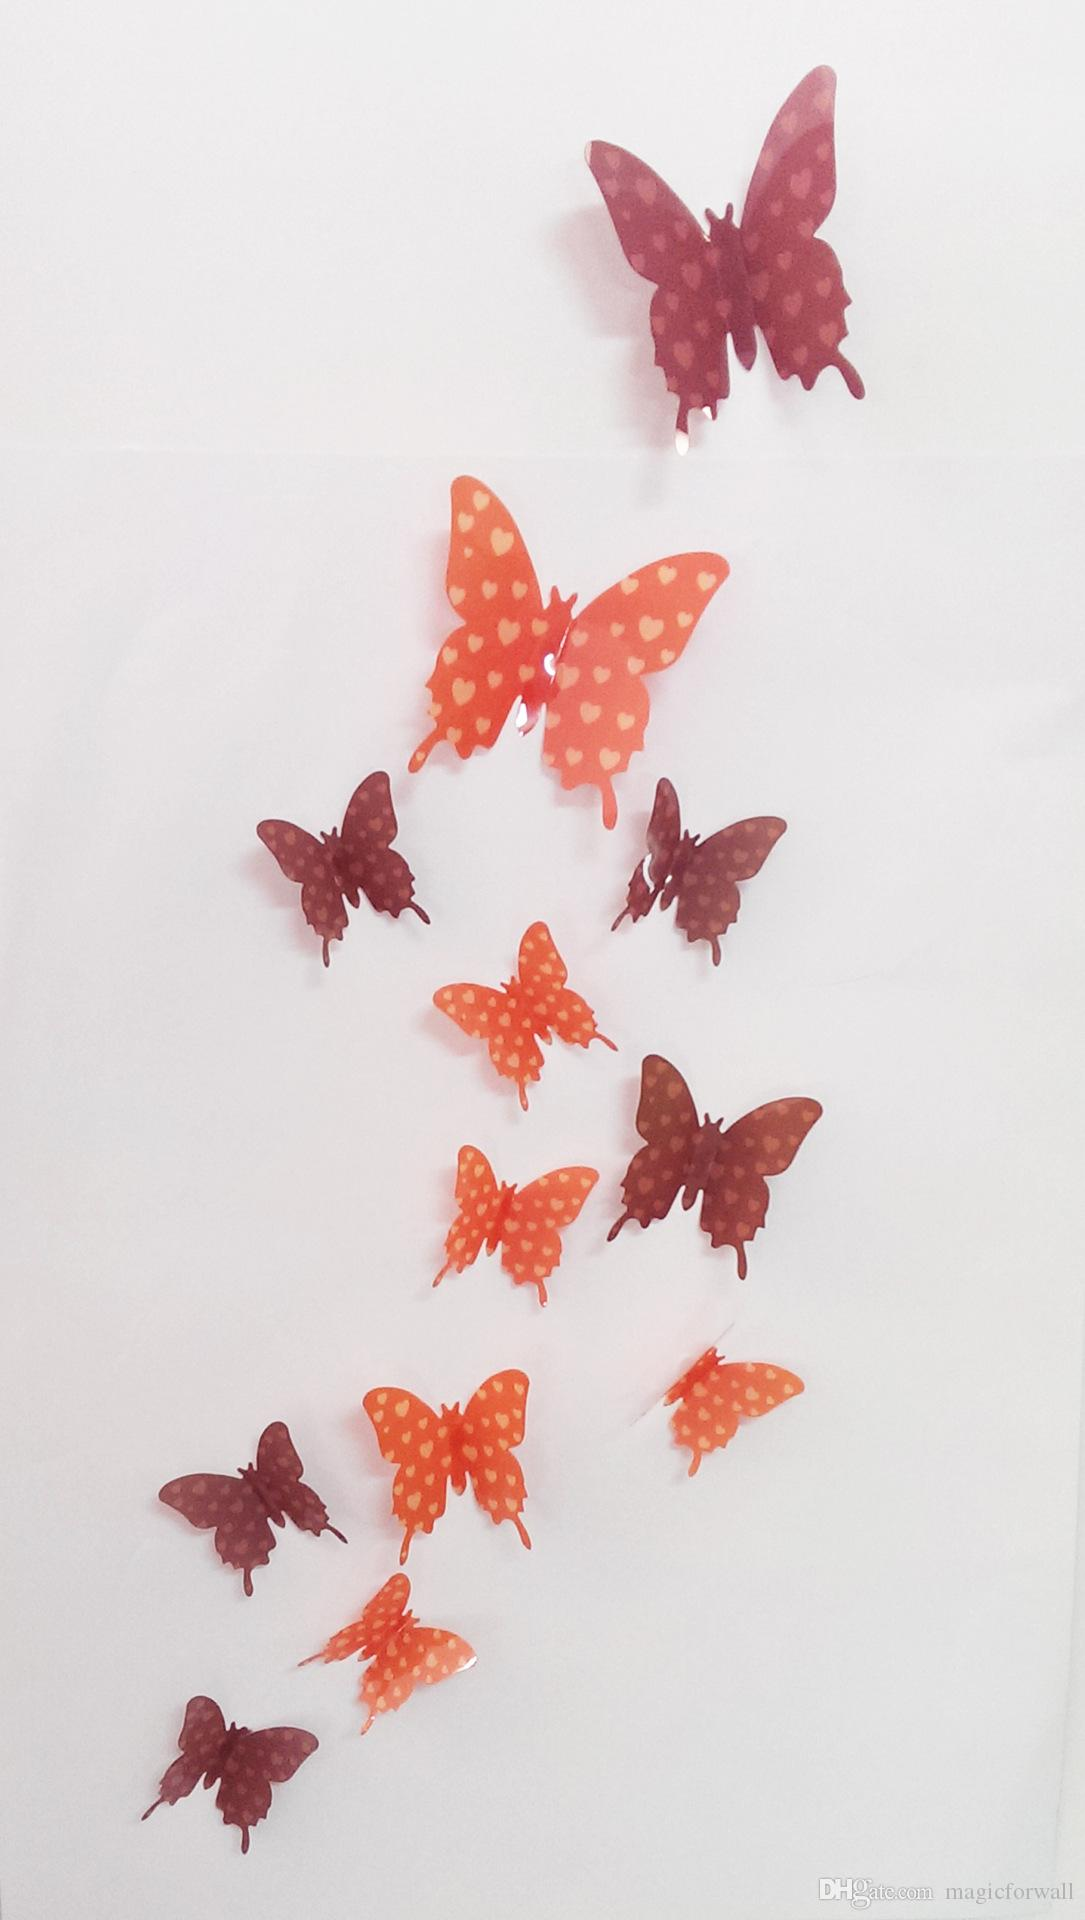 /Pack 3D Colorful Butterfly Wall Decals DIY Home Party Wedding Decoration Wall Stickers Poster Kitchen Refrigerator Wall Mural Applique